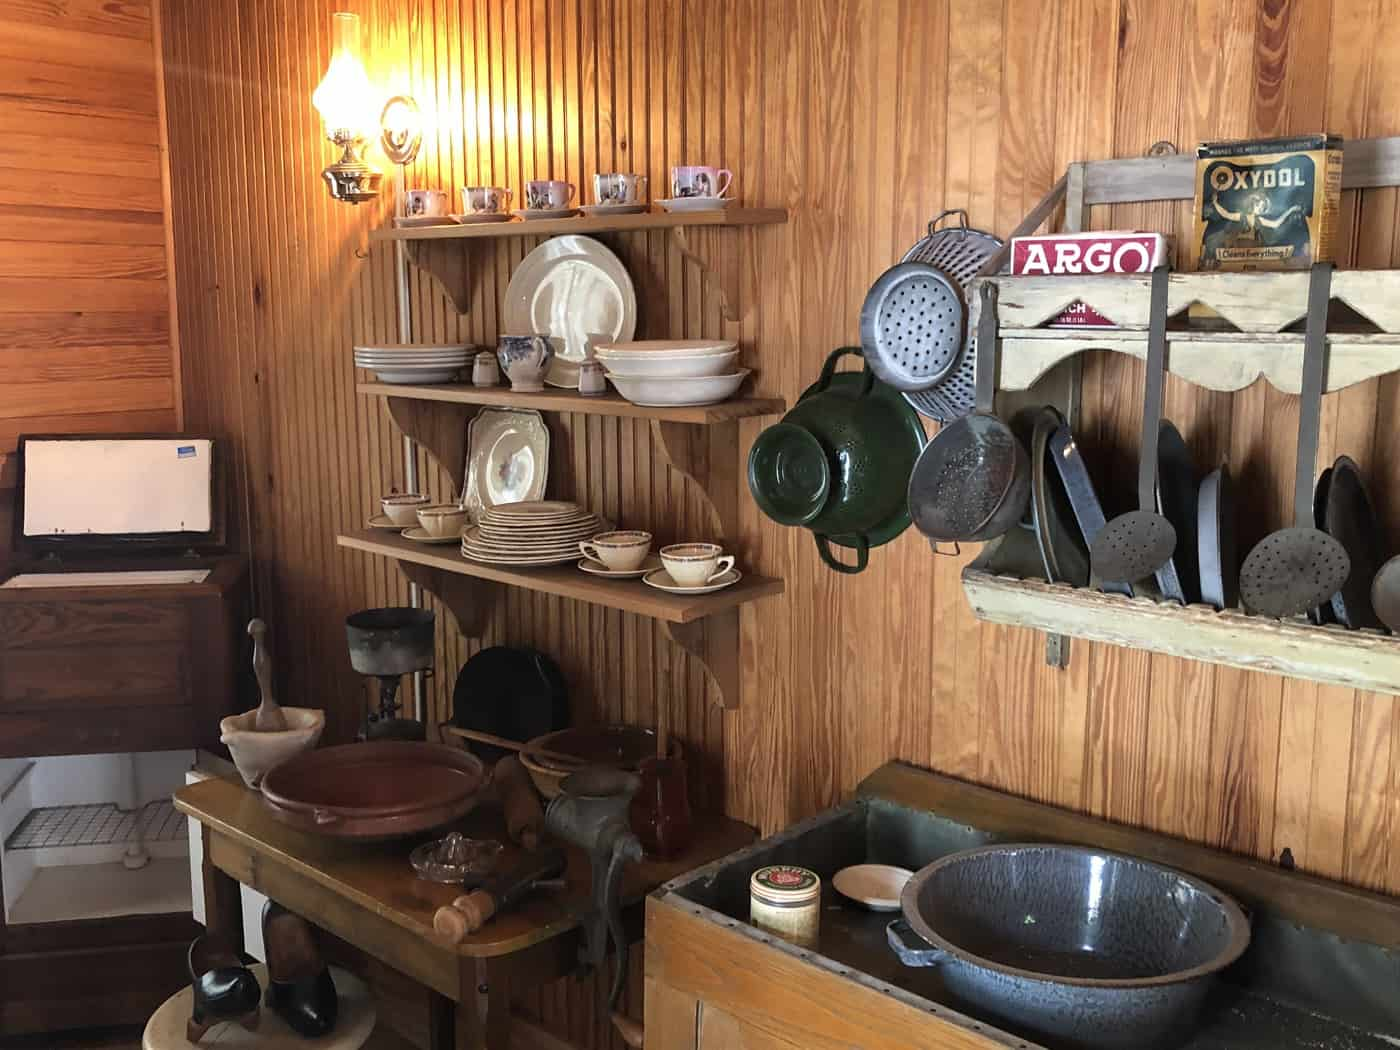 Kitchen at Ybor Museum